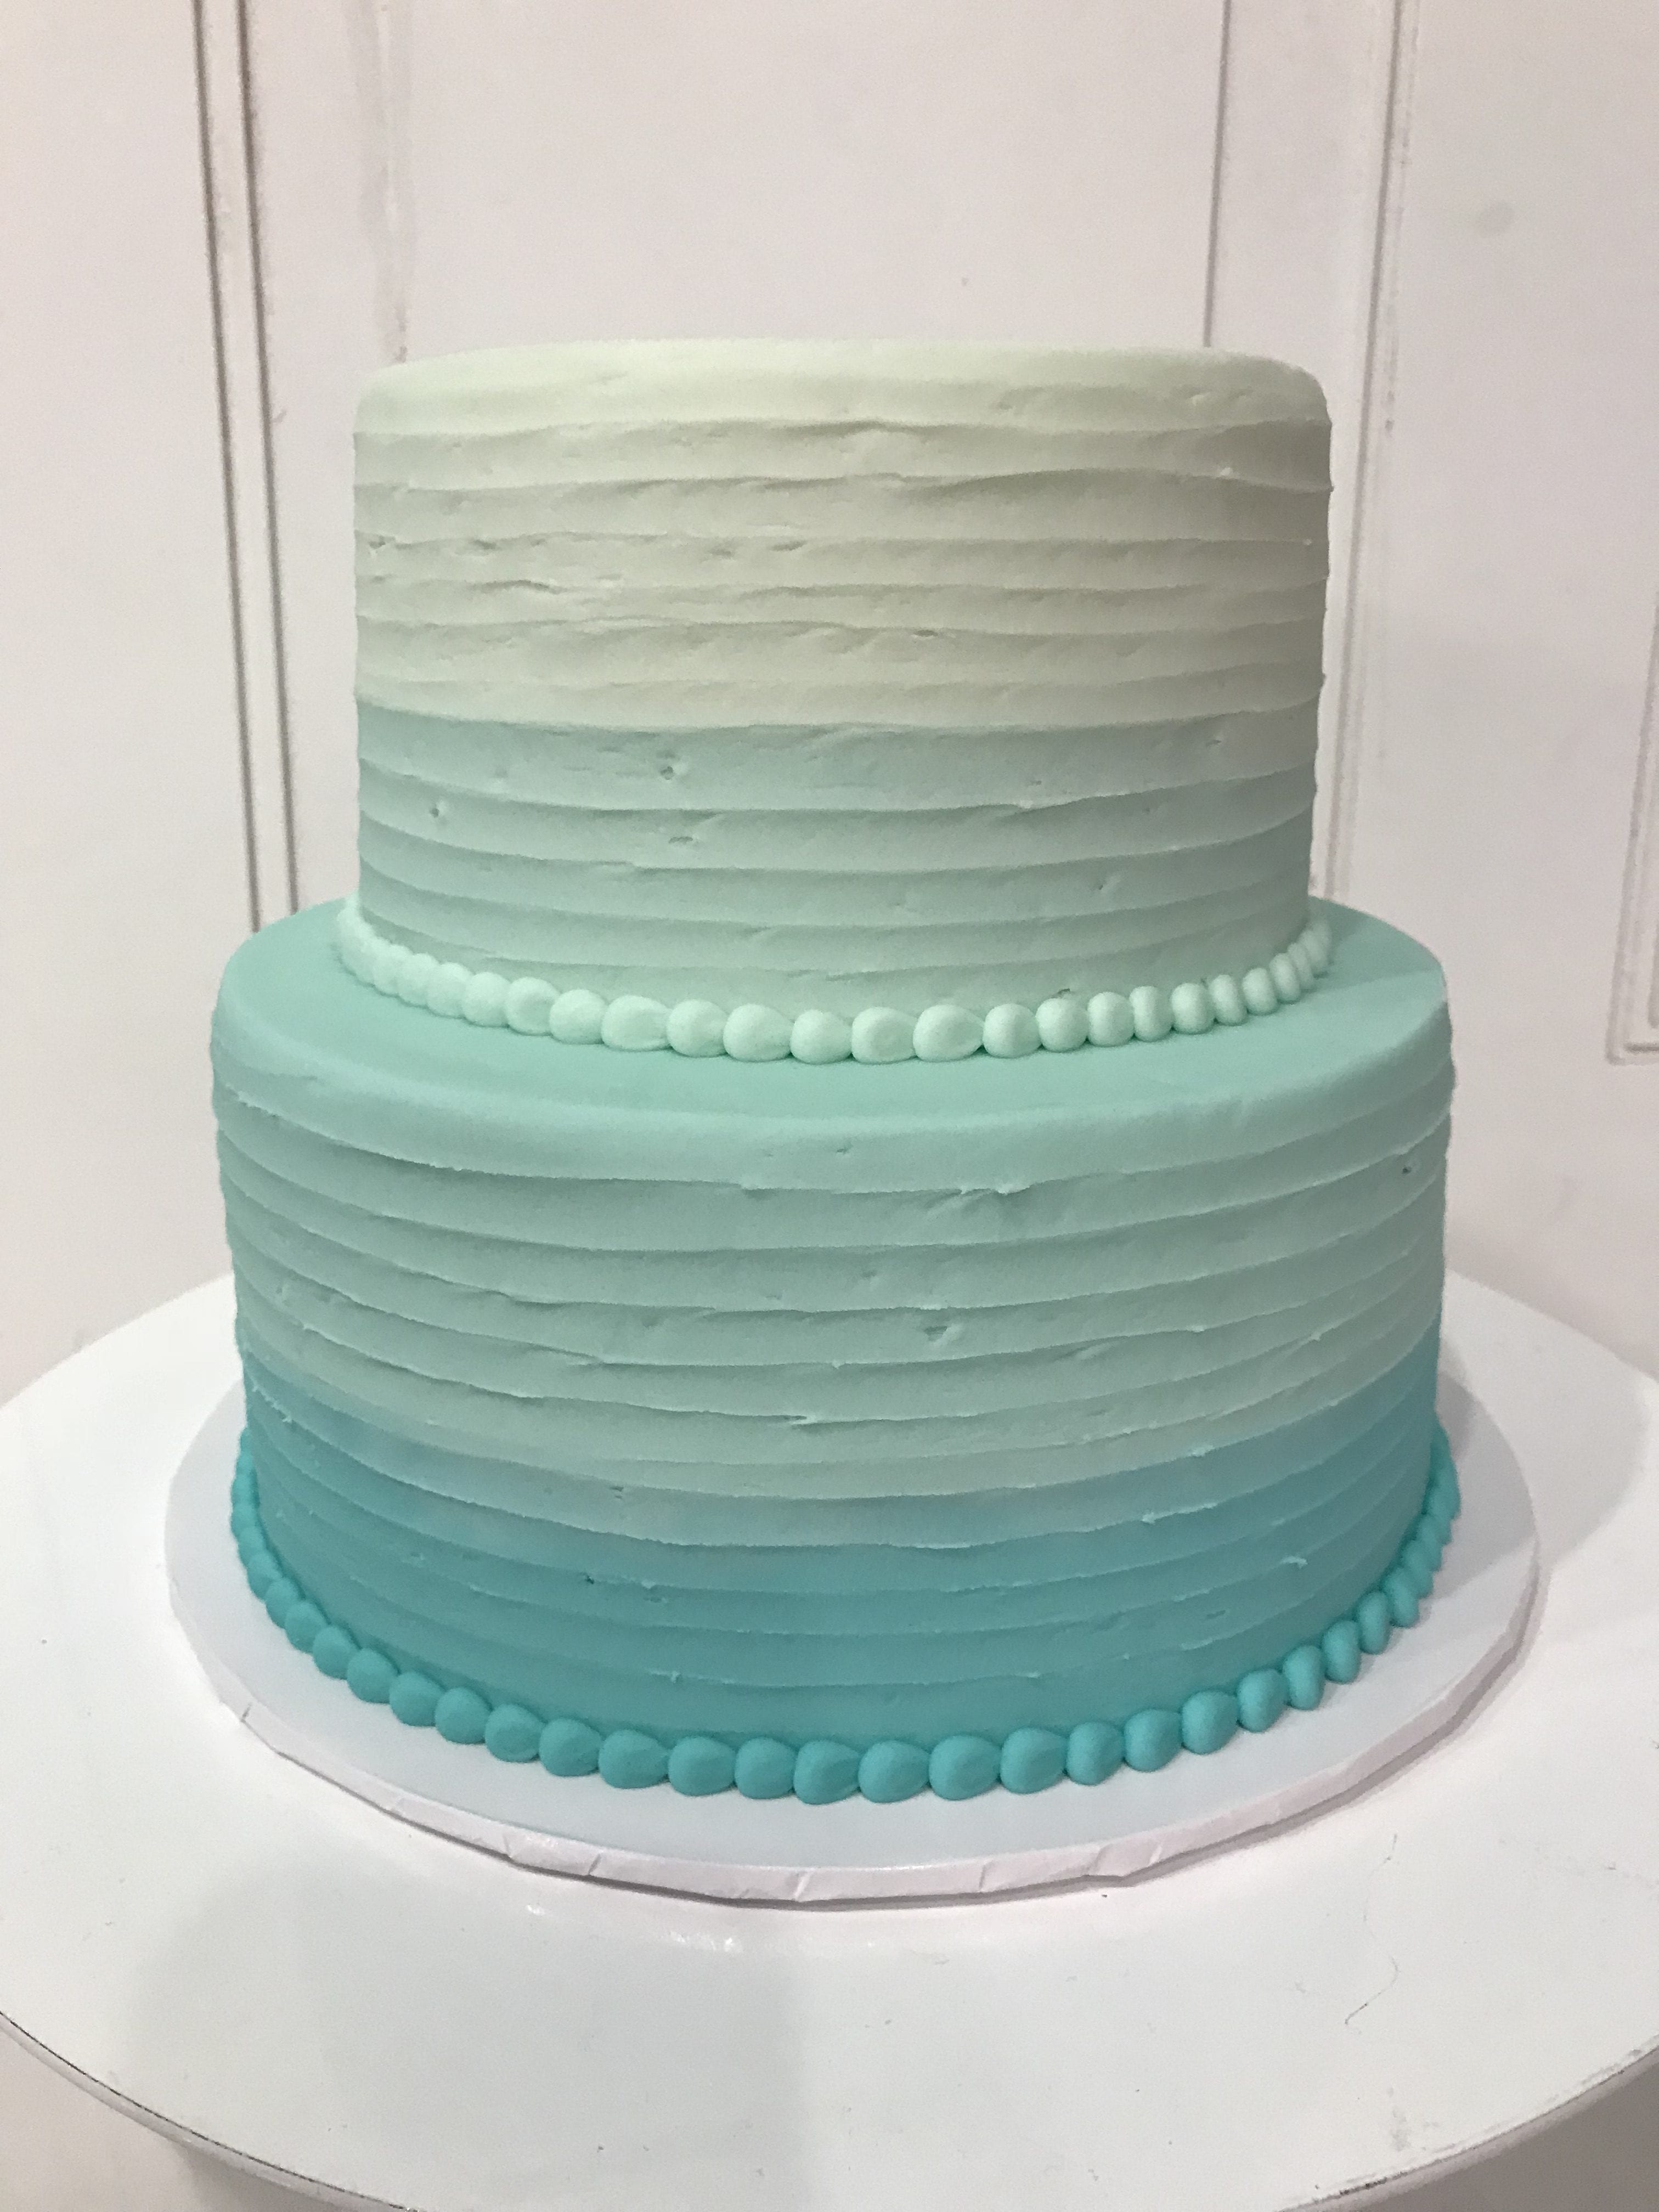 2 Tier Ombre Soft Blue Rustic Textured Birthday Cake   3 Sweet Girls Cakery